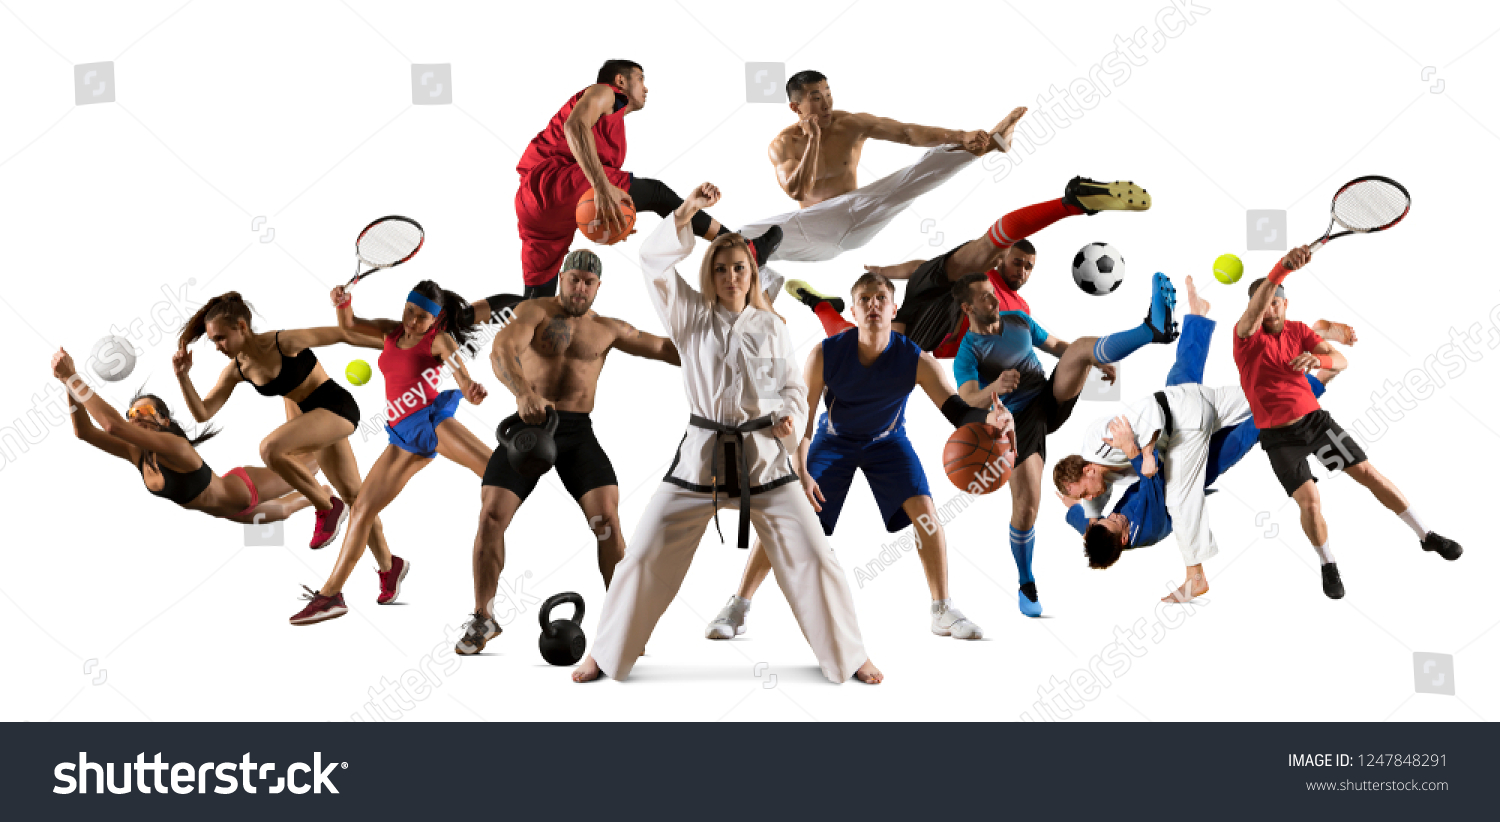 BTEC L1 Diploma in Sport and Active Leisure